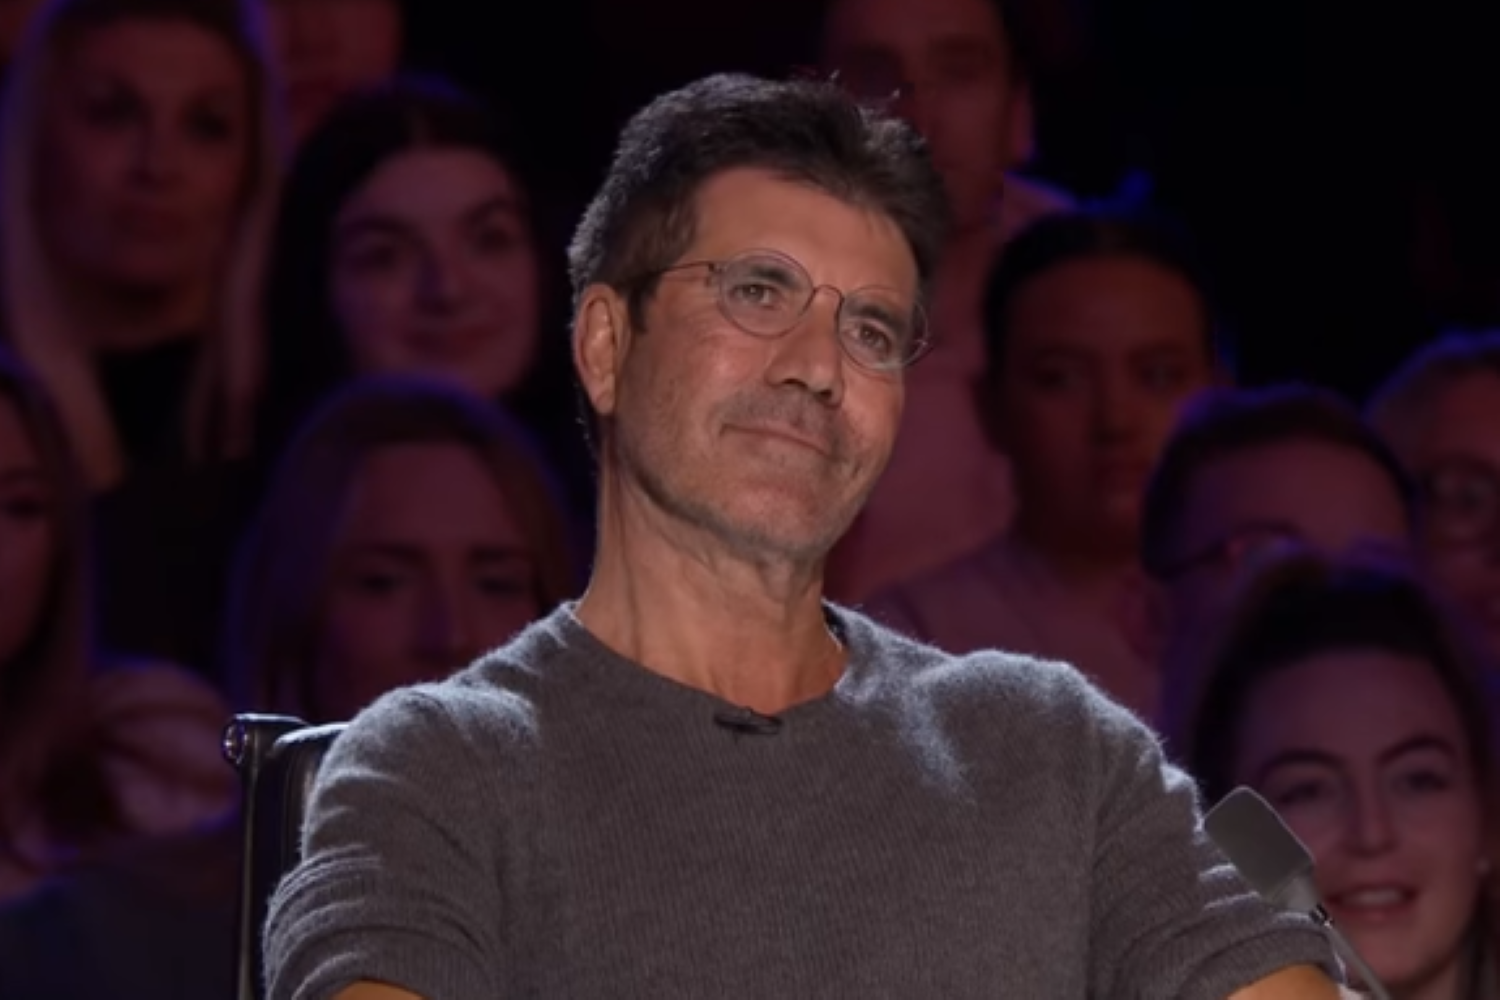 Britain's Got Talent fans not impressed with series so far